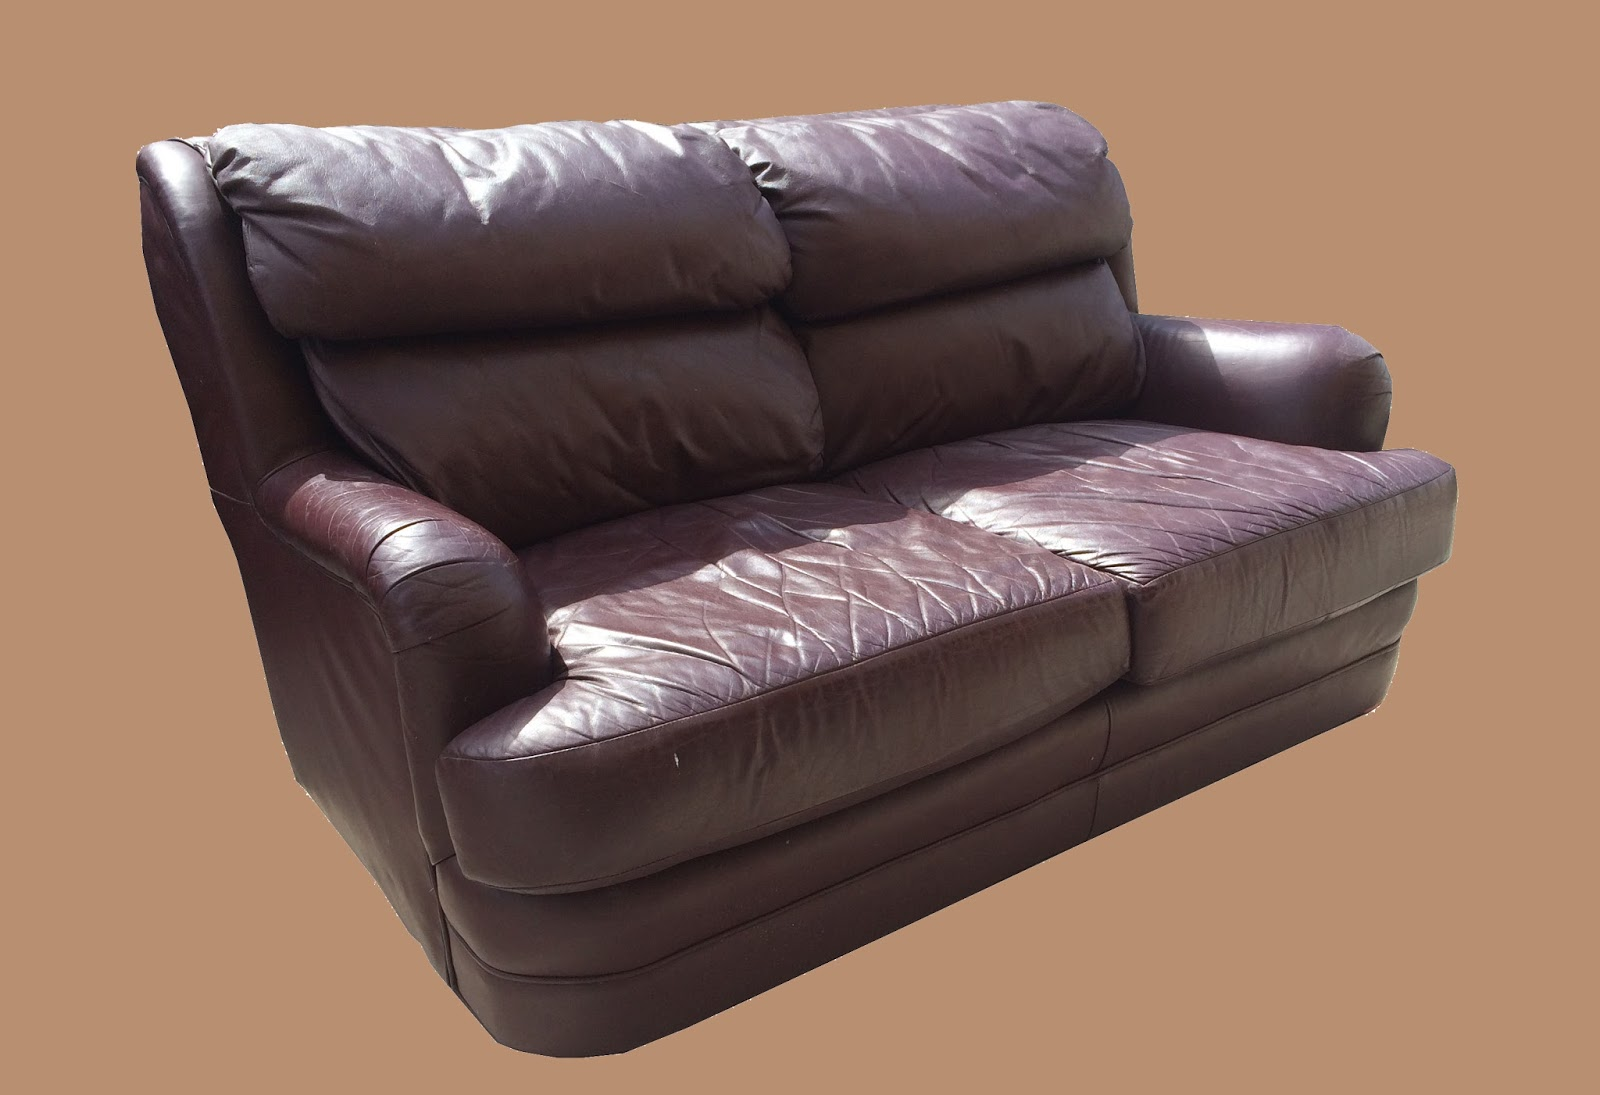 Uhuru Furniture Collectibles Leather Loveseat 135 Sold